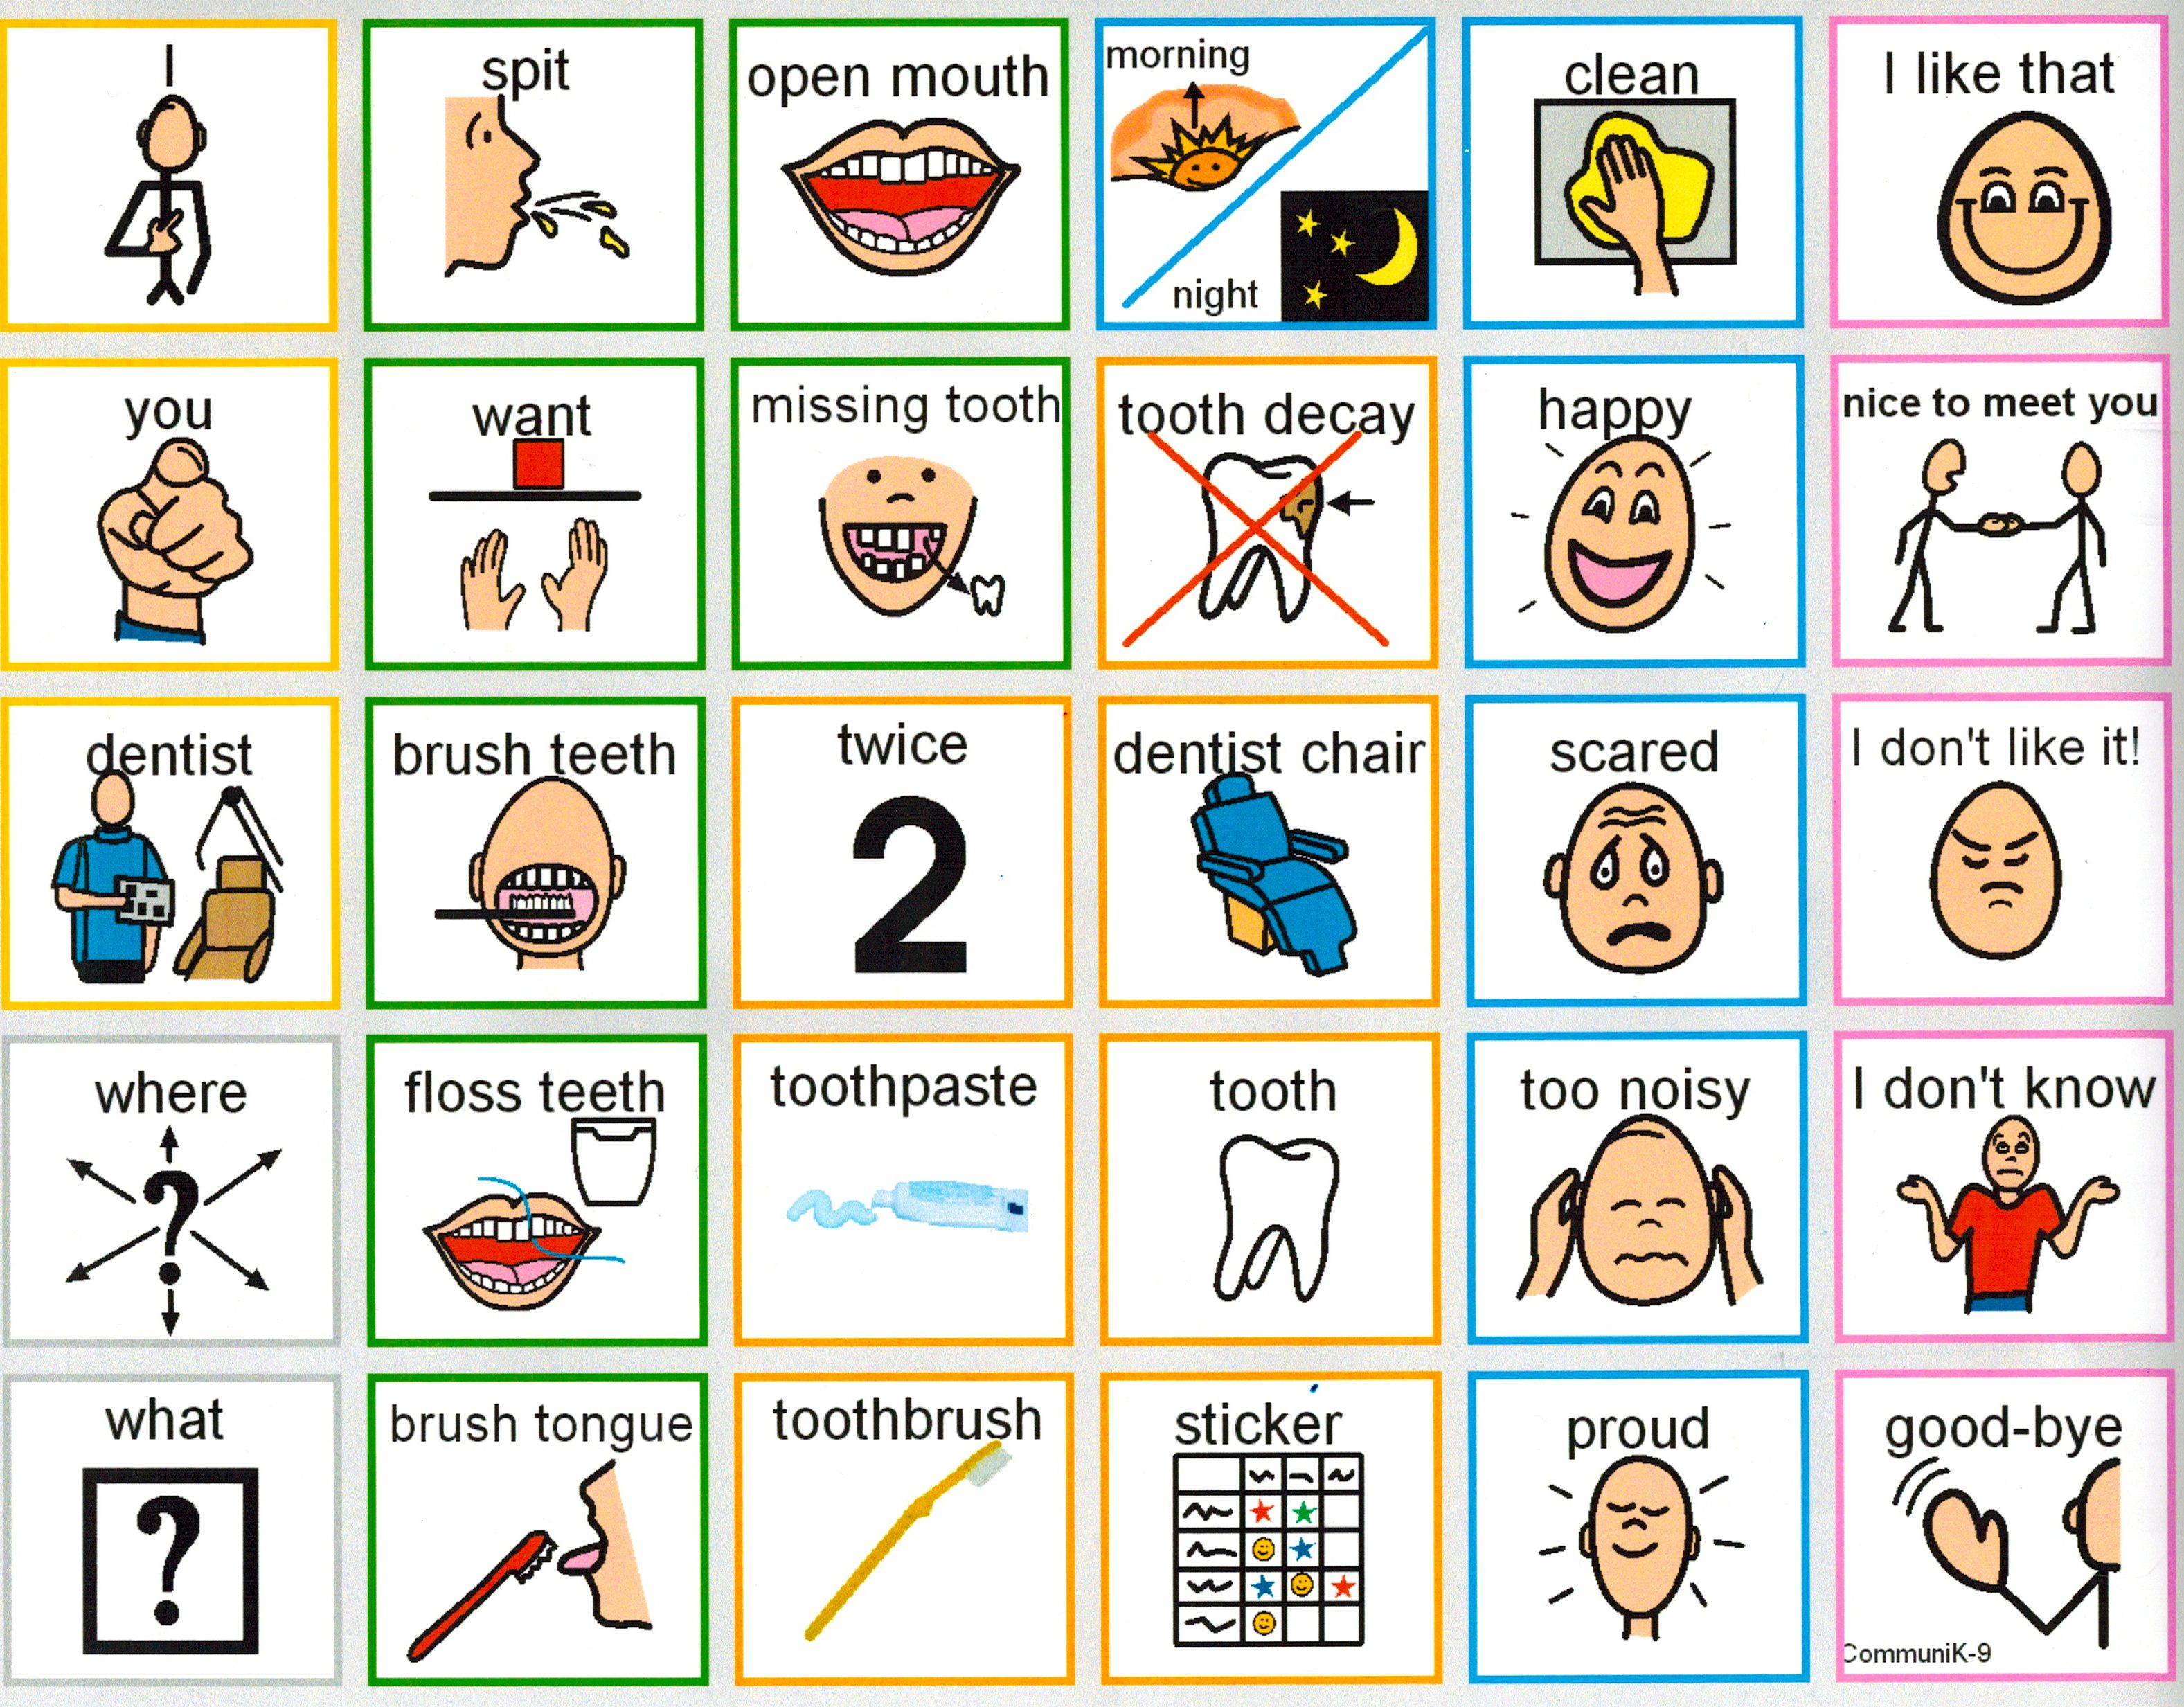 communication boards for people with aphasia